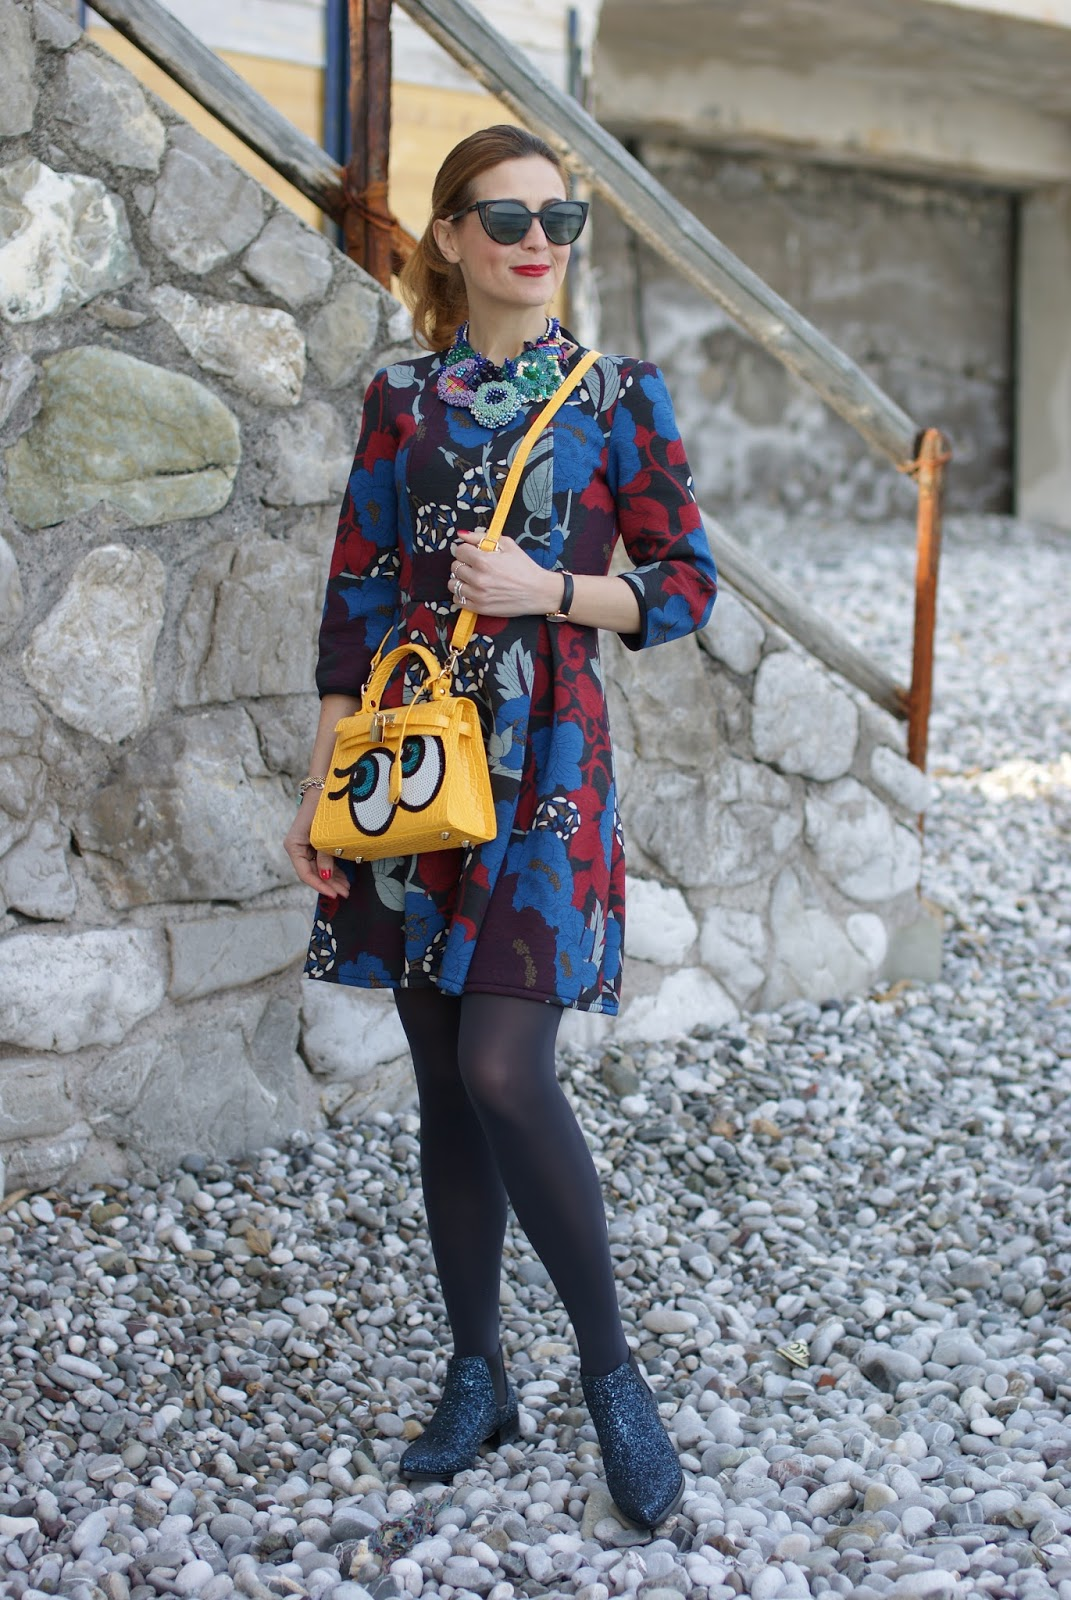 Fleece floral dress, abito in felpa, PLAYNOMORE SHYGIRL bag in yellow buttercup on Fashion and Cookies fashion blog, fashion blogger style